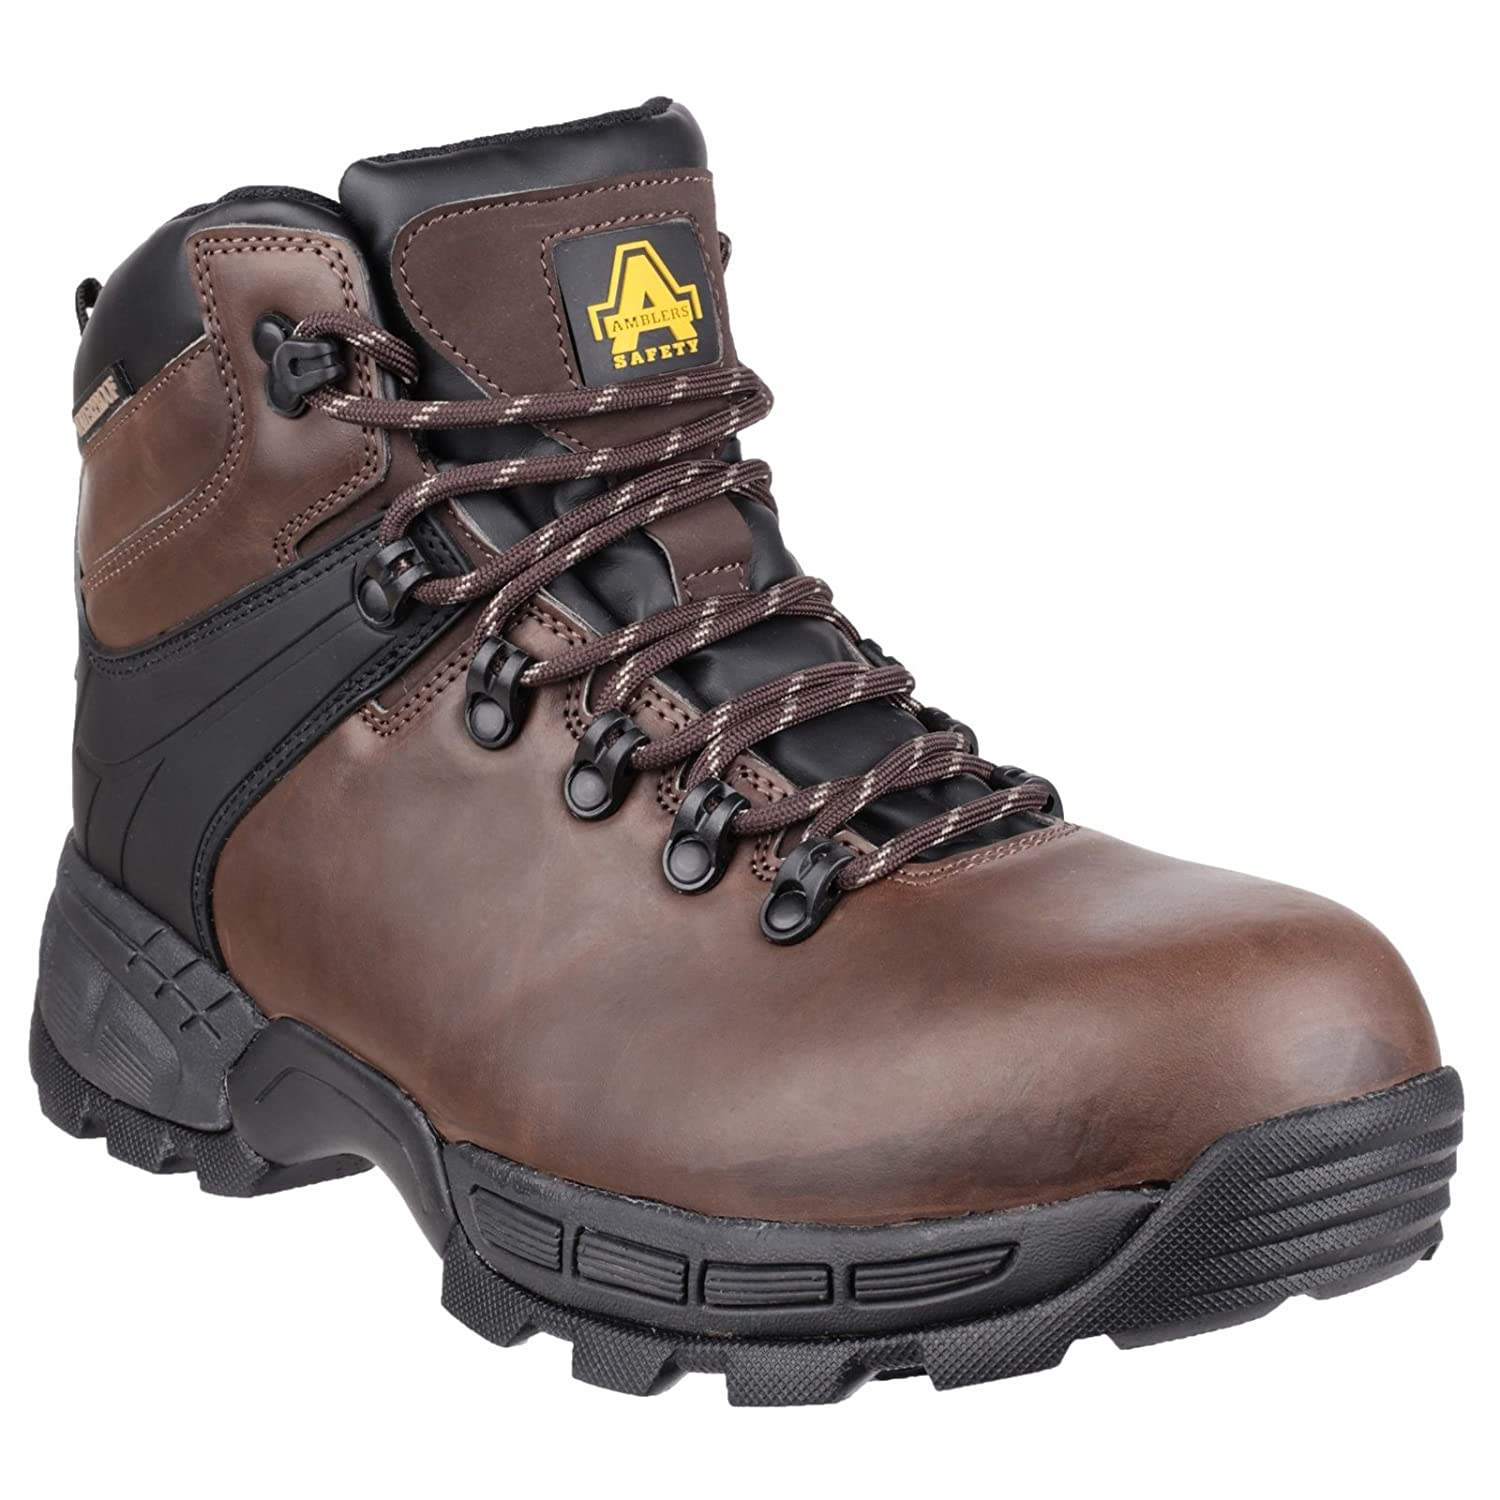 Stiefel Herrenschuhe Safety Boots Amblers Steel toe Work Boots uk sizes 6-12